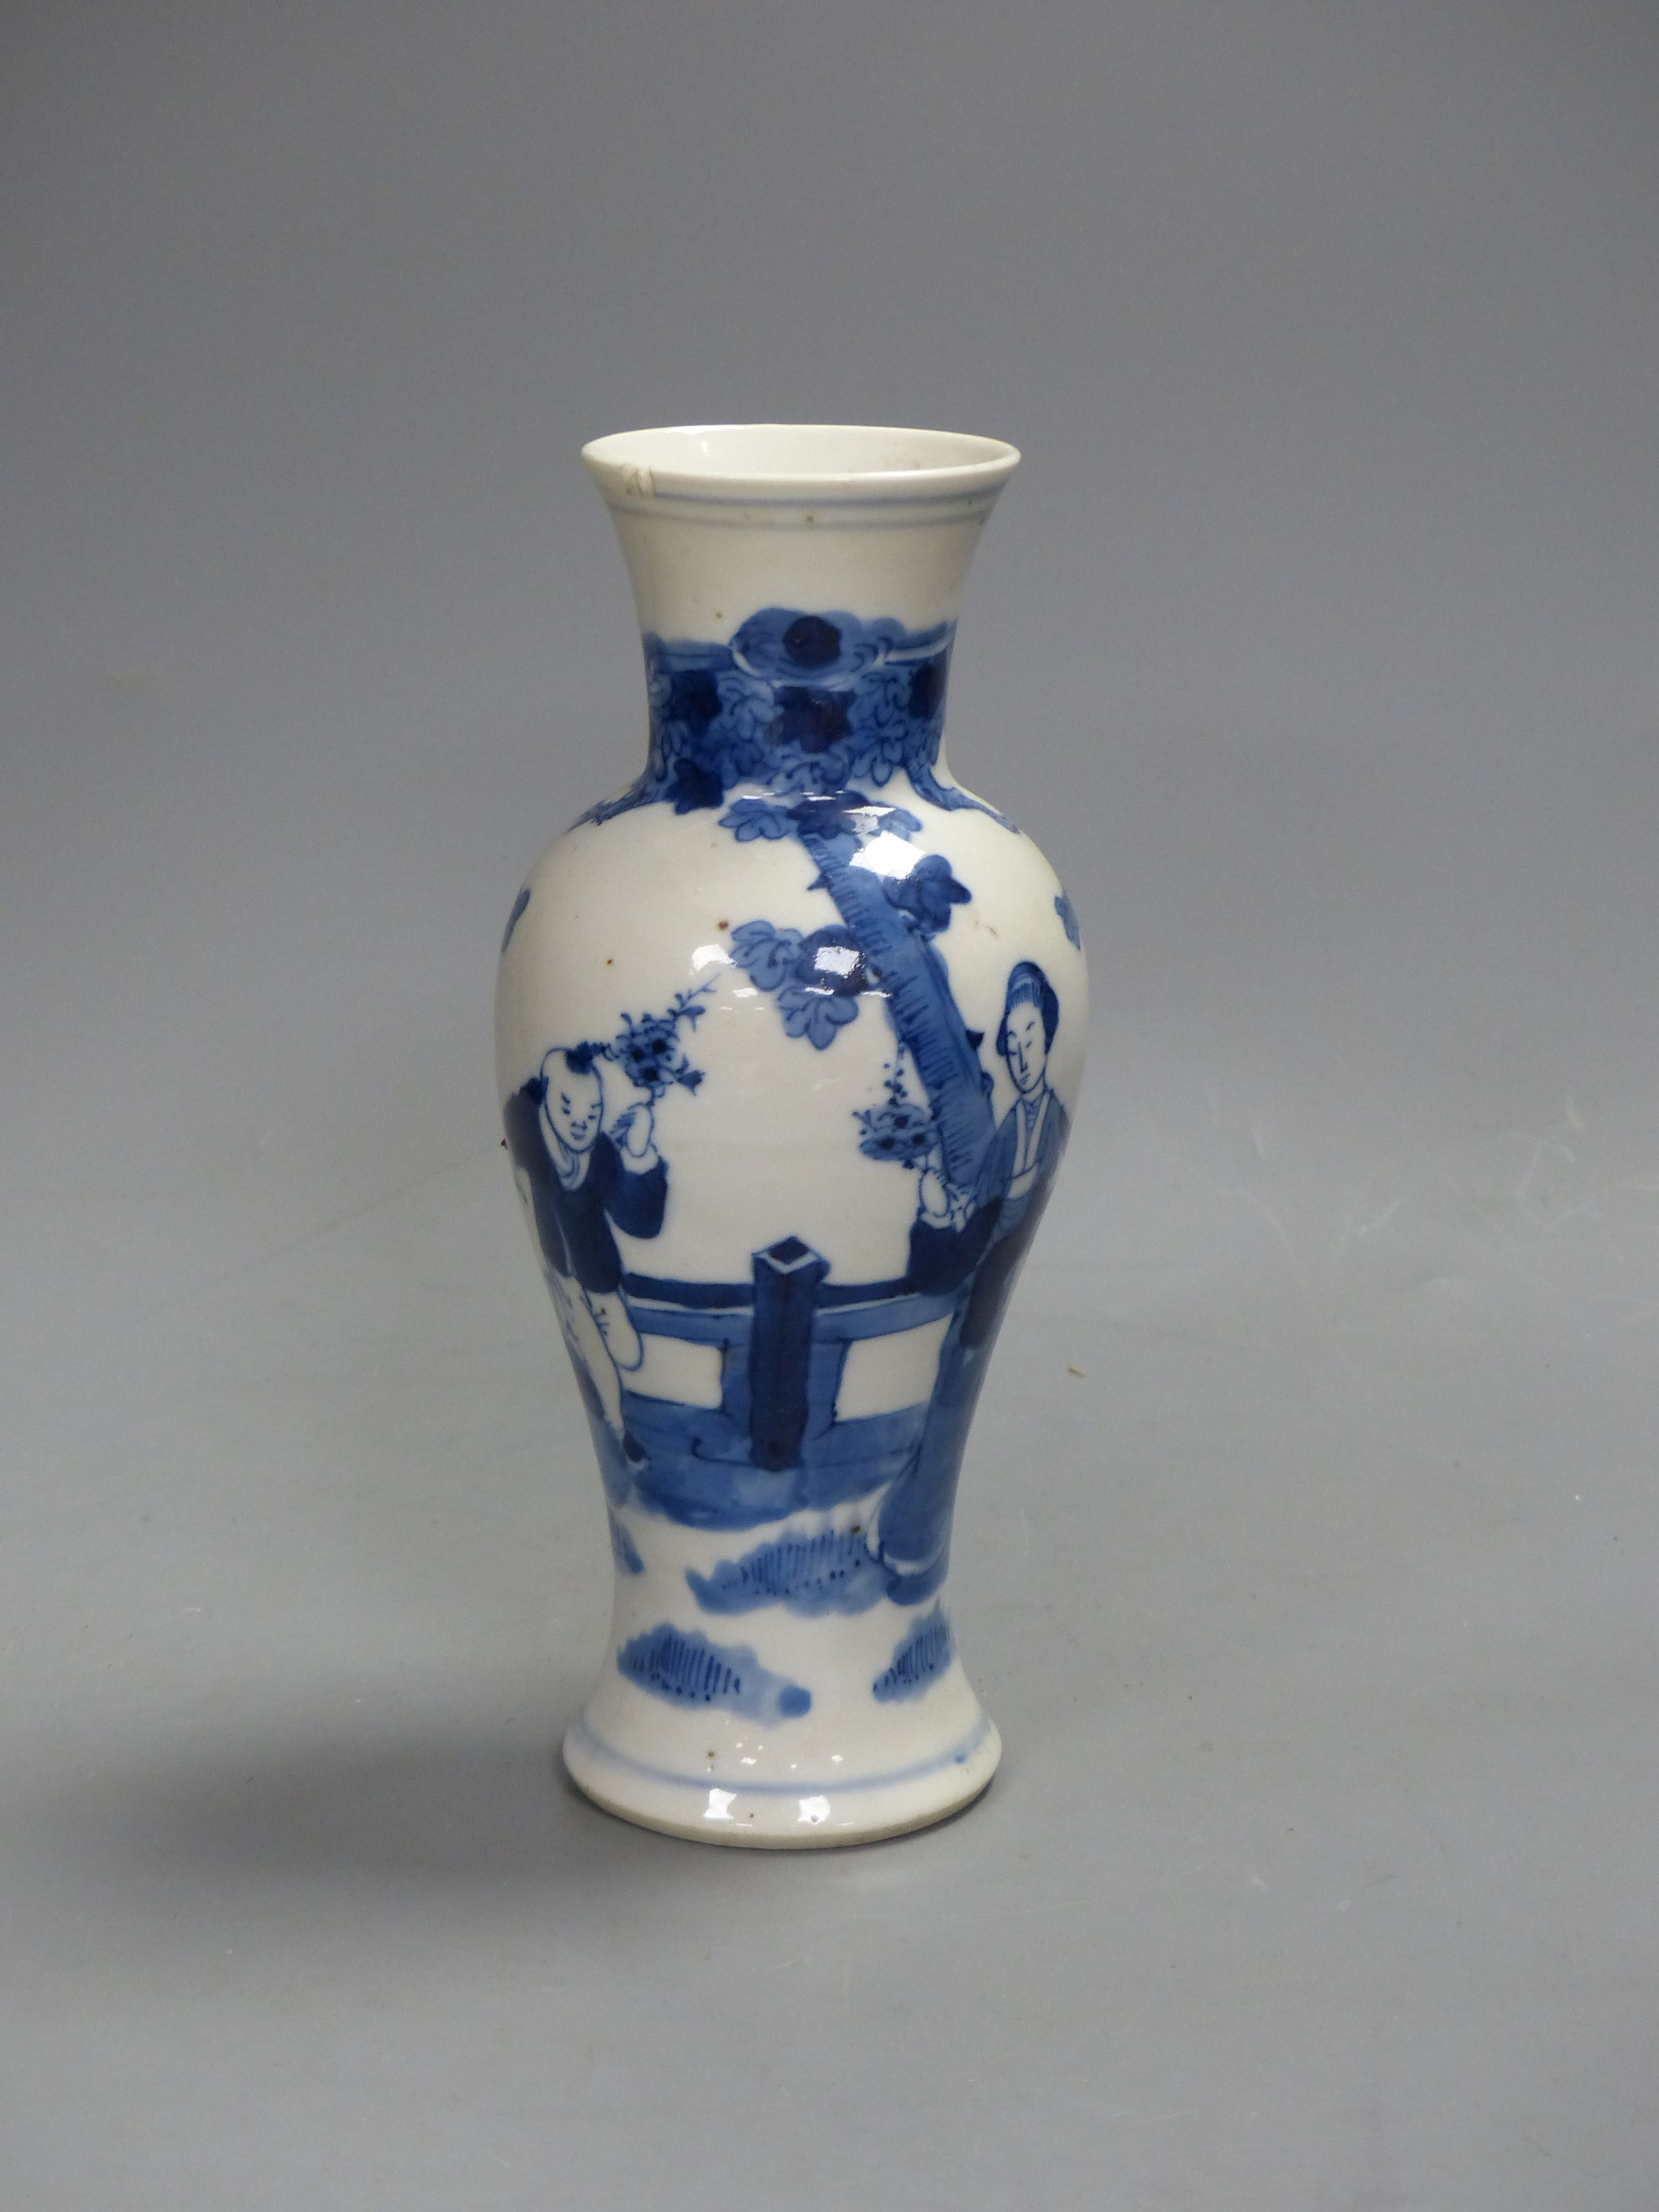 A 19th century Chinese blue and white vase, height 21cm